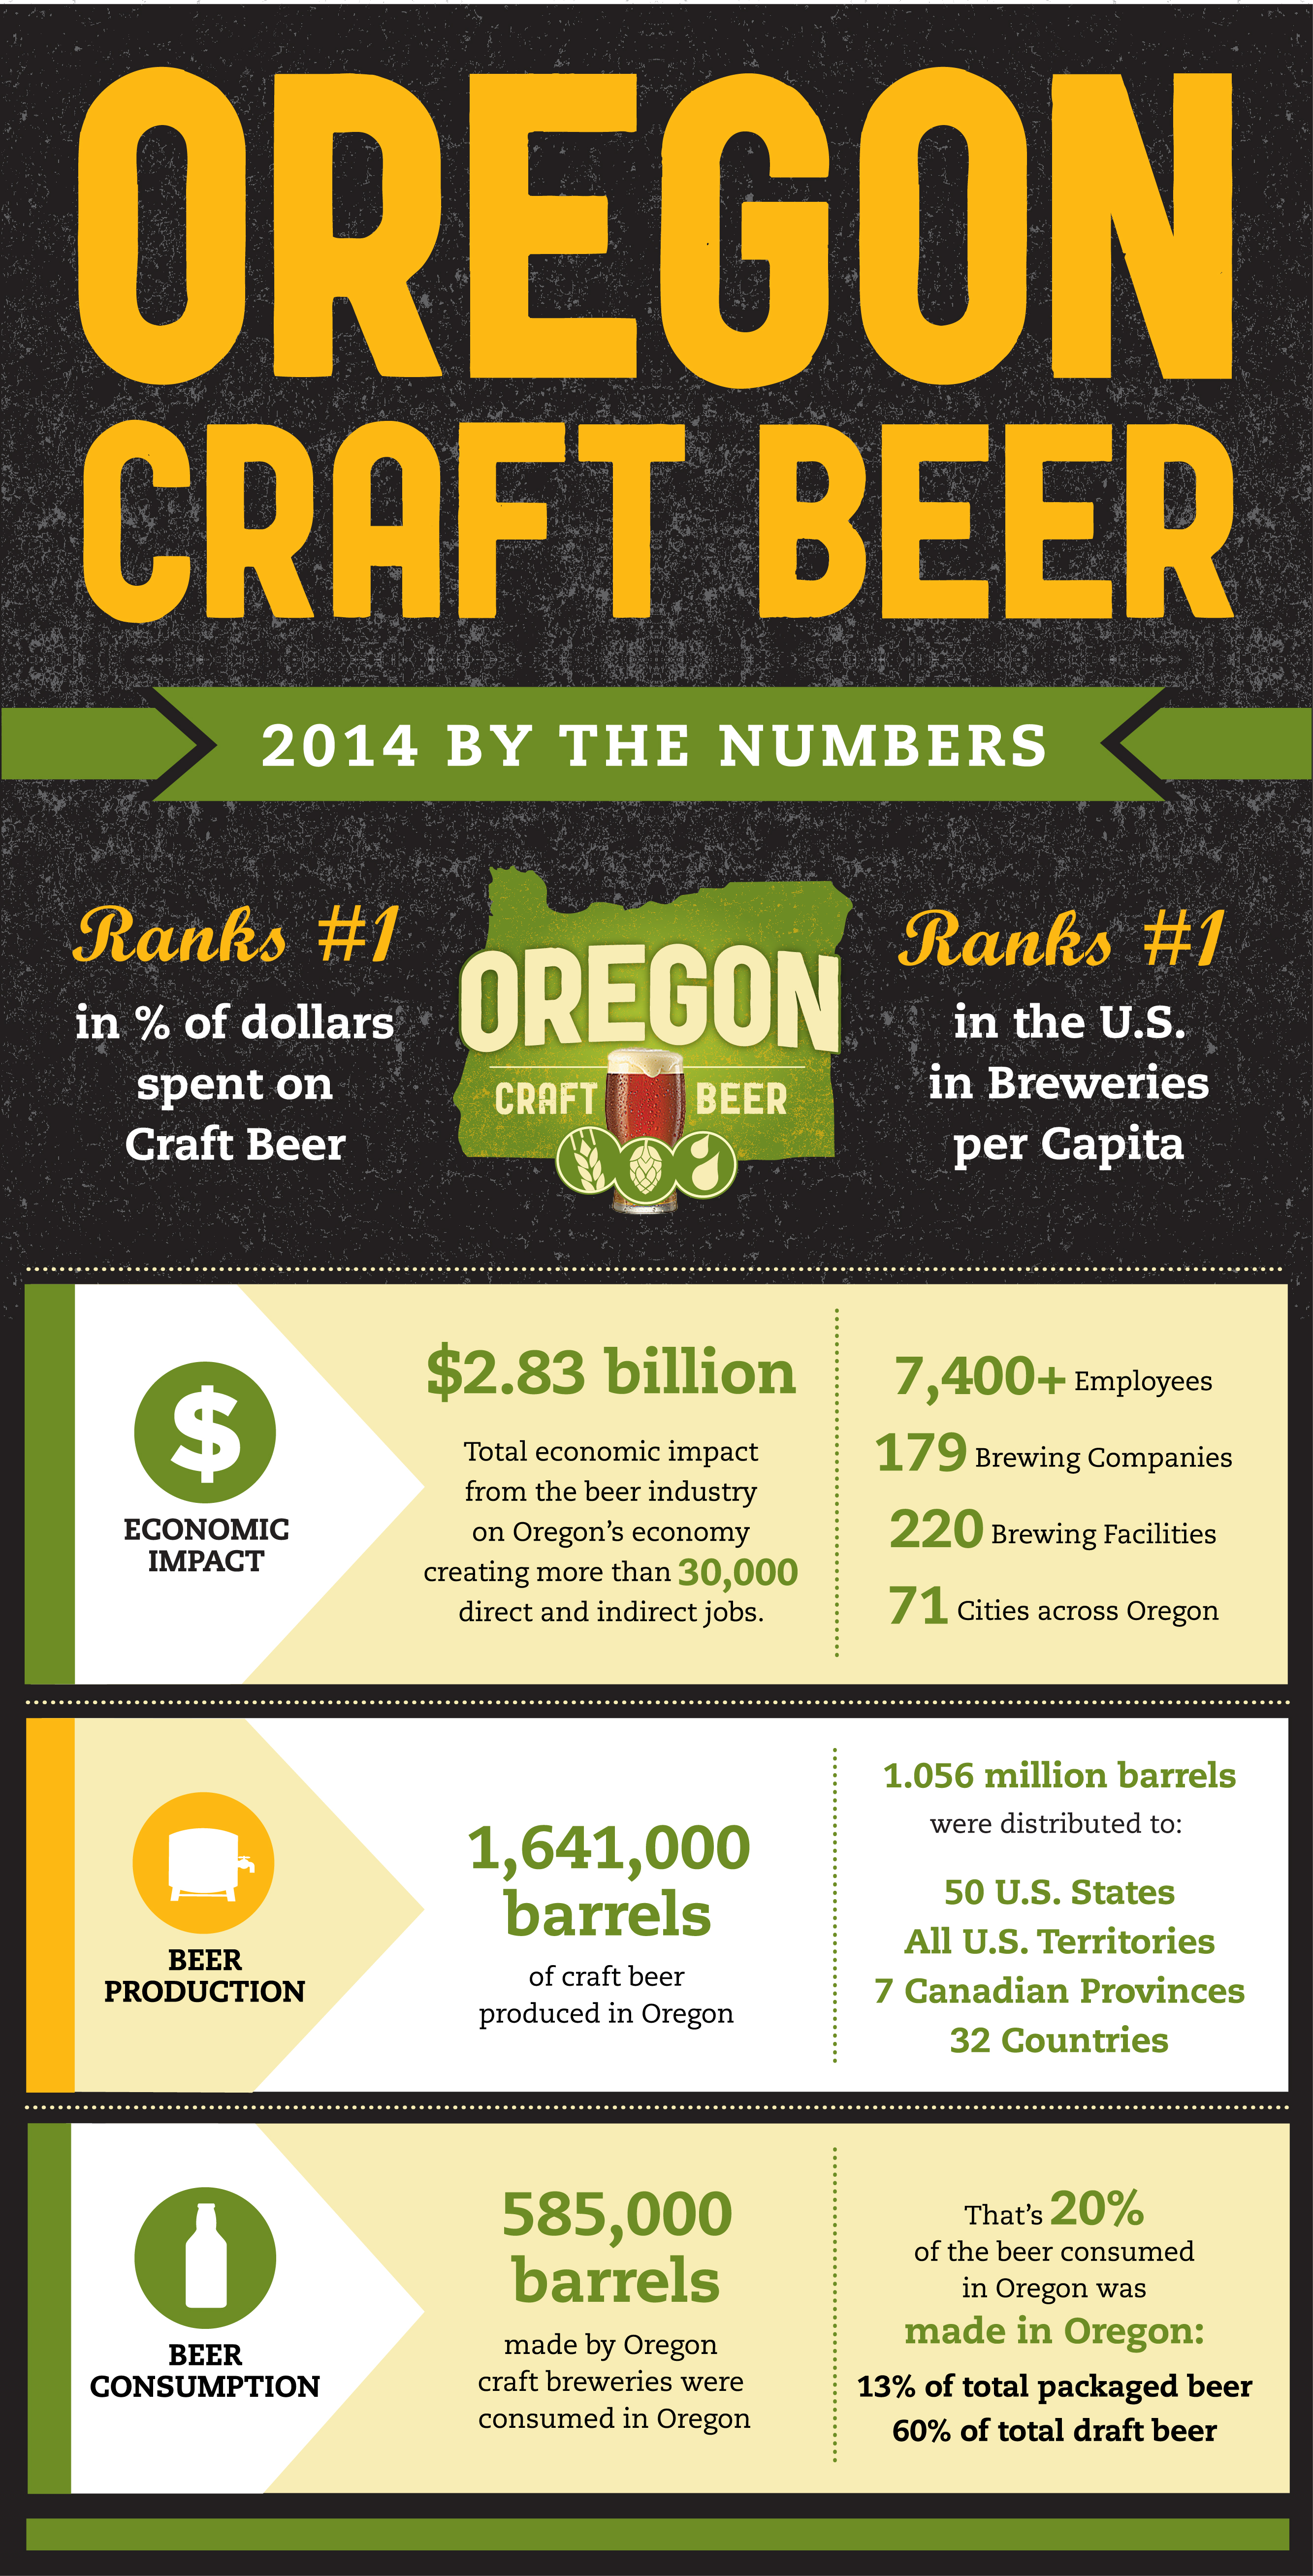 ORCraftBeer-infographic-300dpi